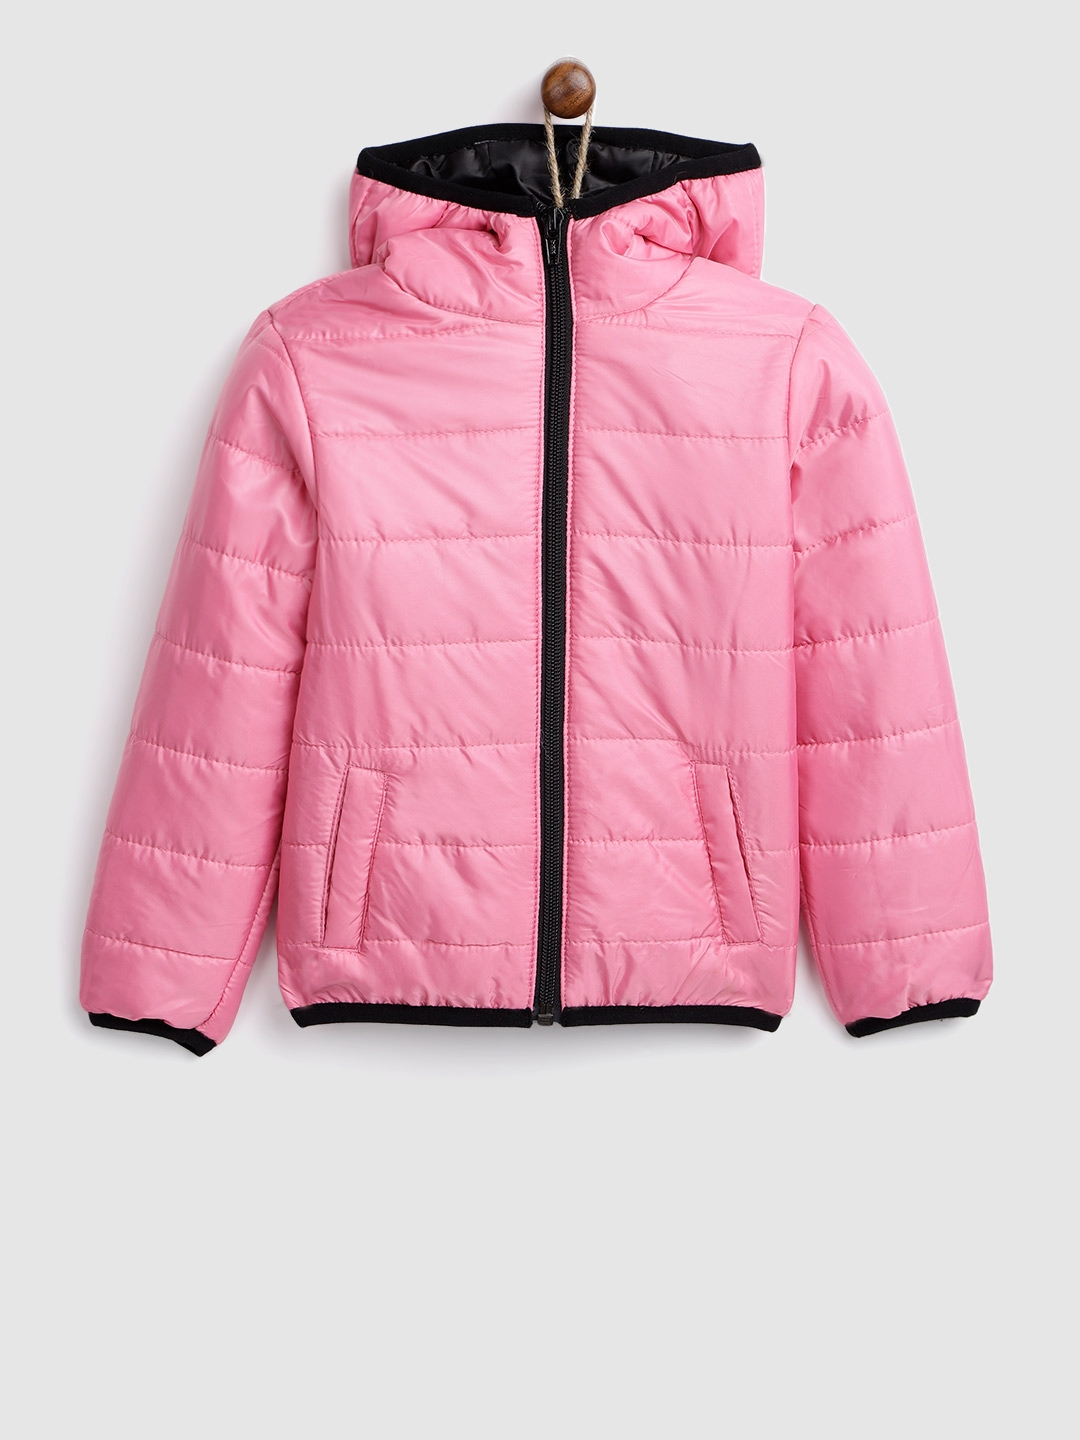 46d4996e2 Buy YK Girls Pink Solid Hooded Padded Jacket - Jackets for Girls ...